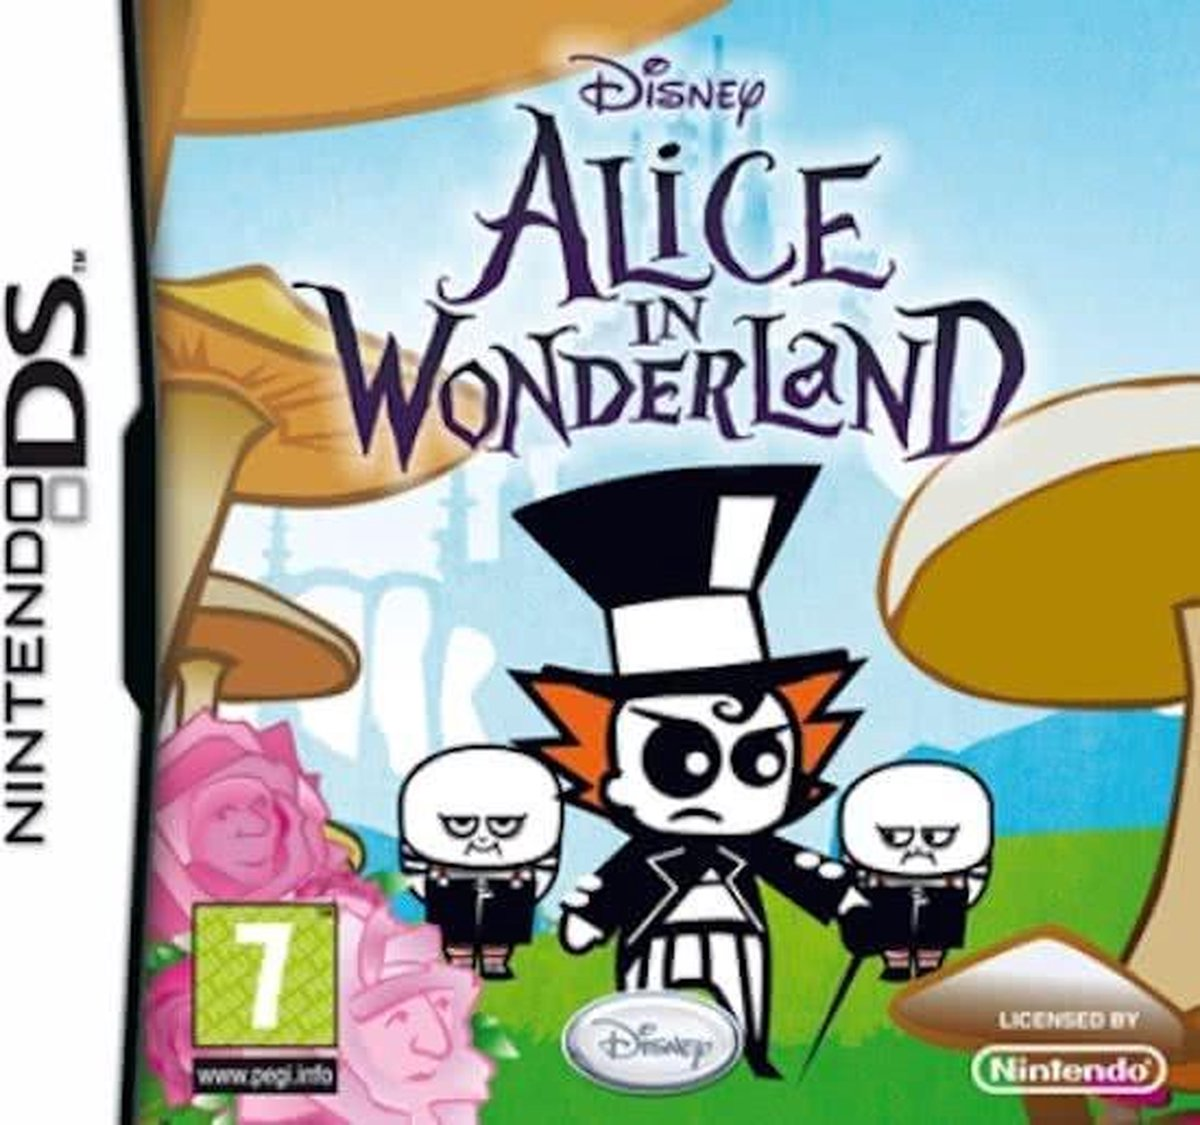 Alice in Wonderland - Disney Interactive